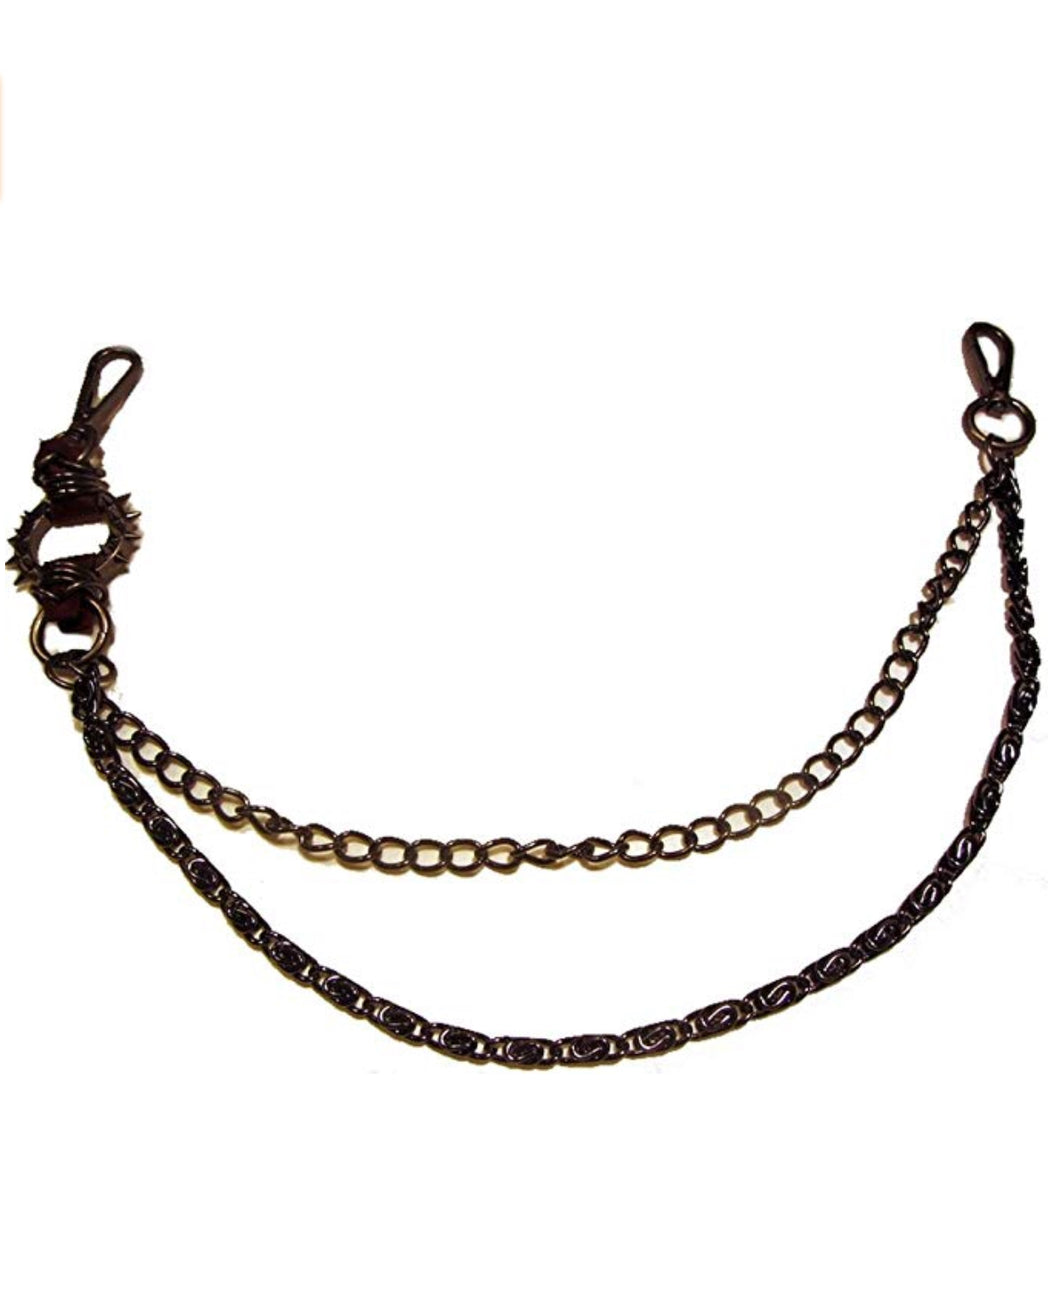 Hosenkette - Bikerkette - Schlüsselkette - Spike Gate Brown - BK30